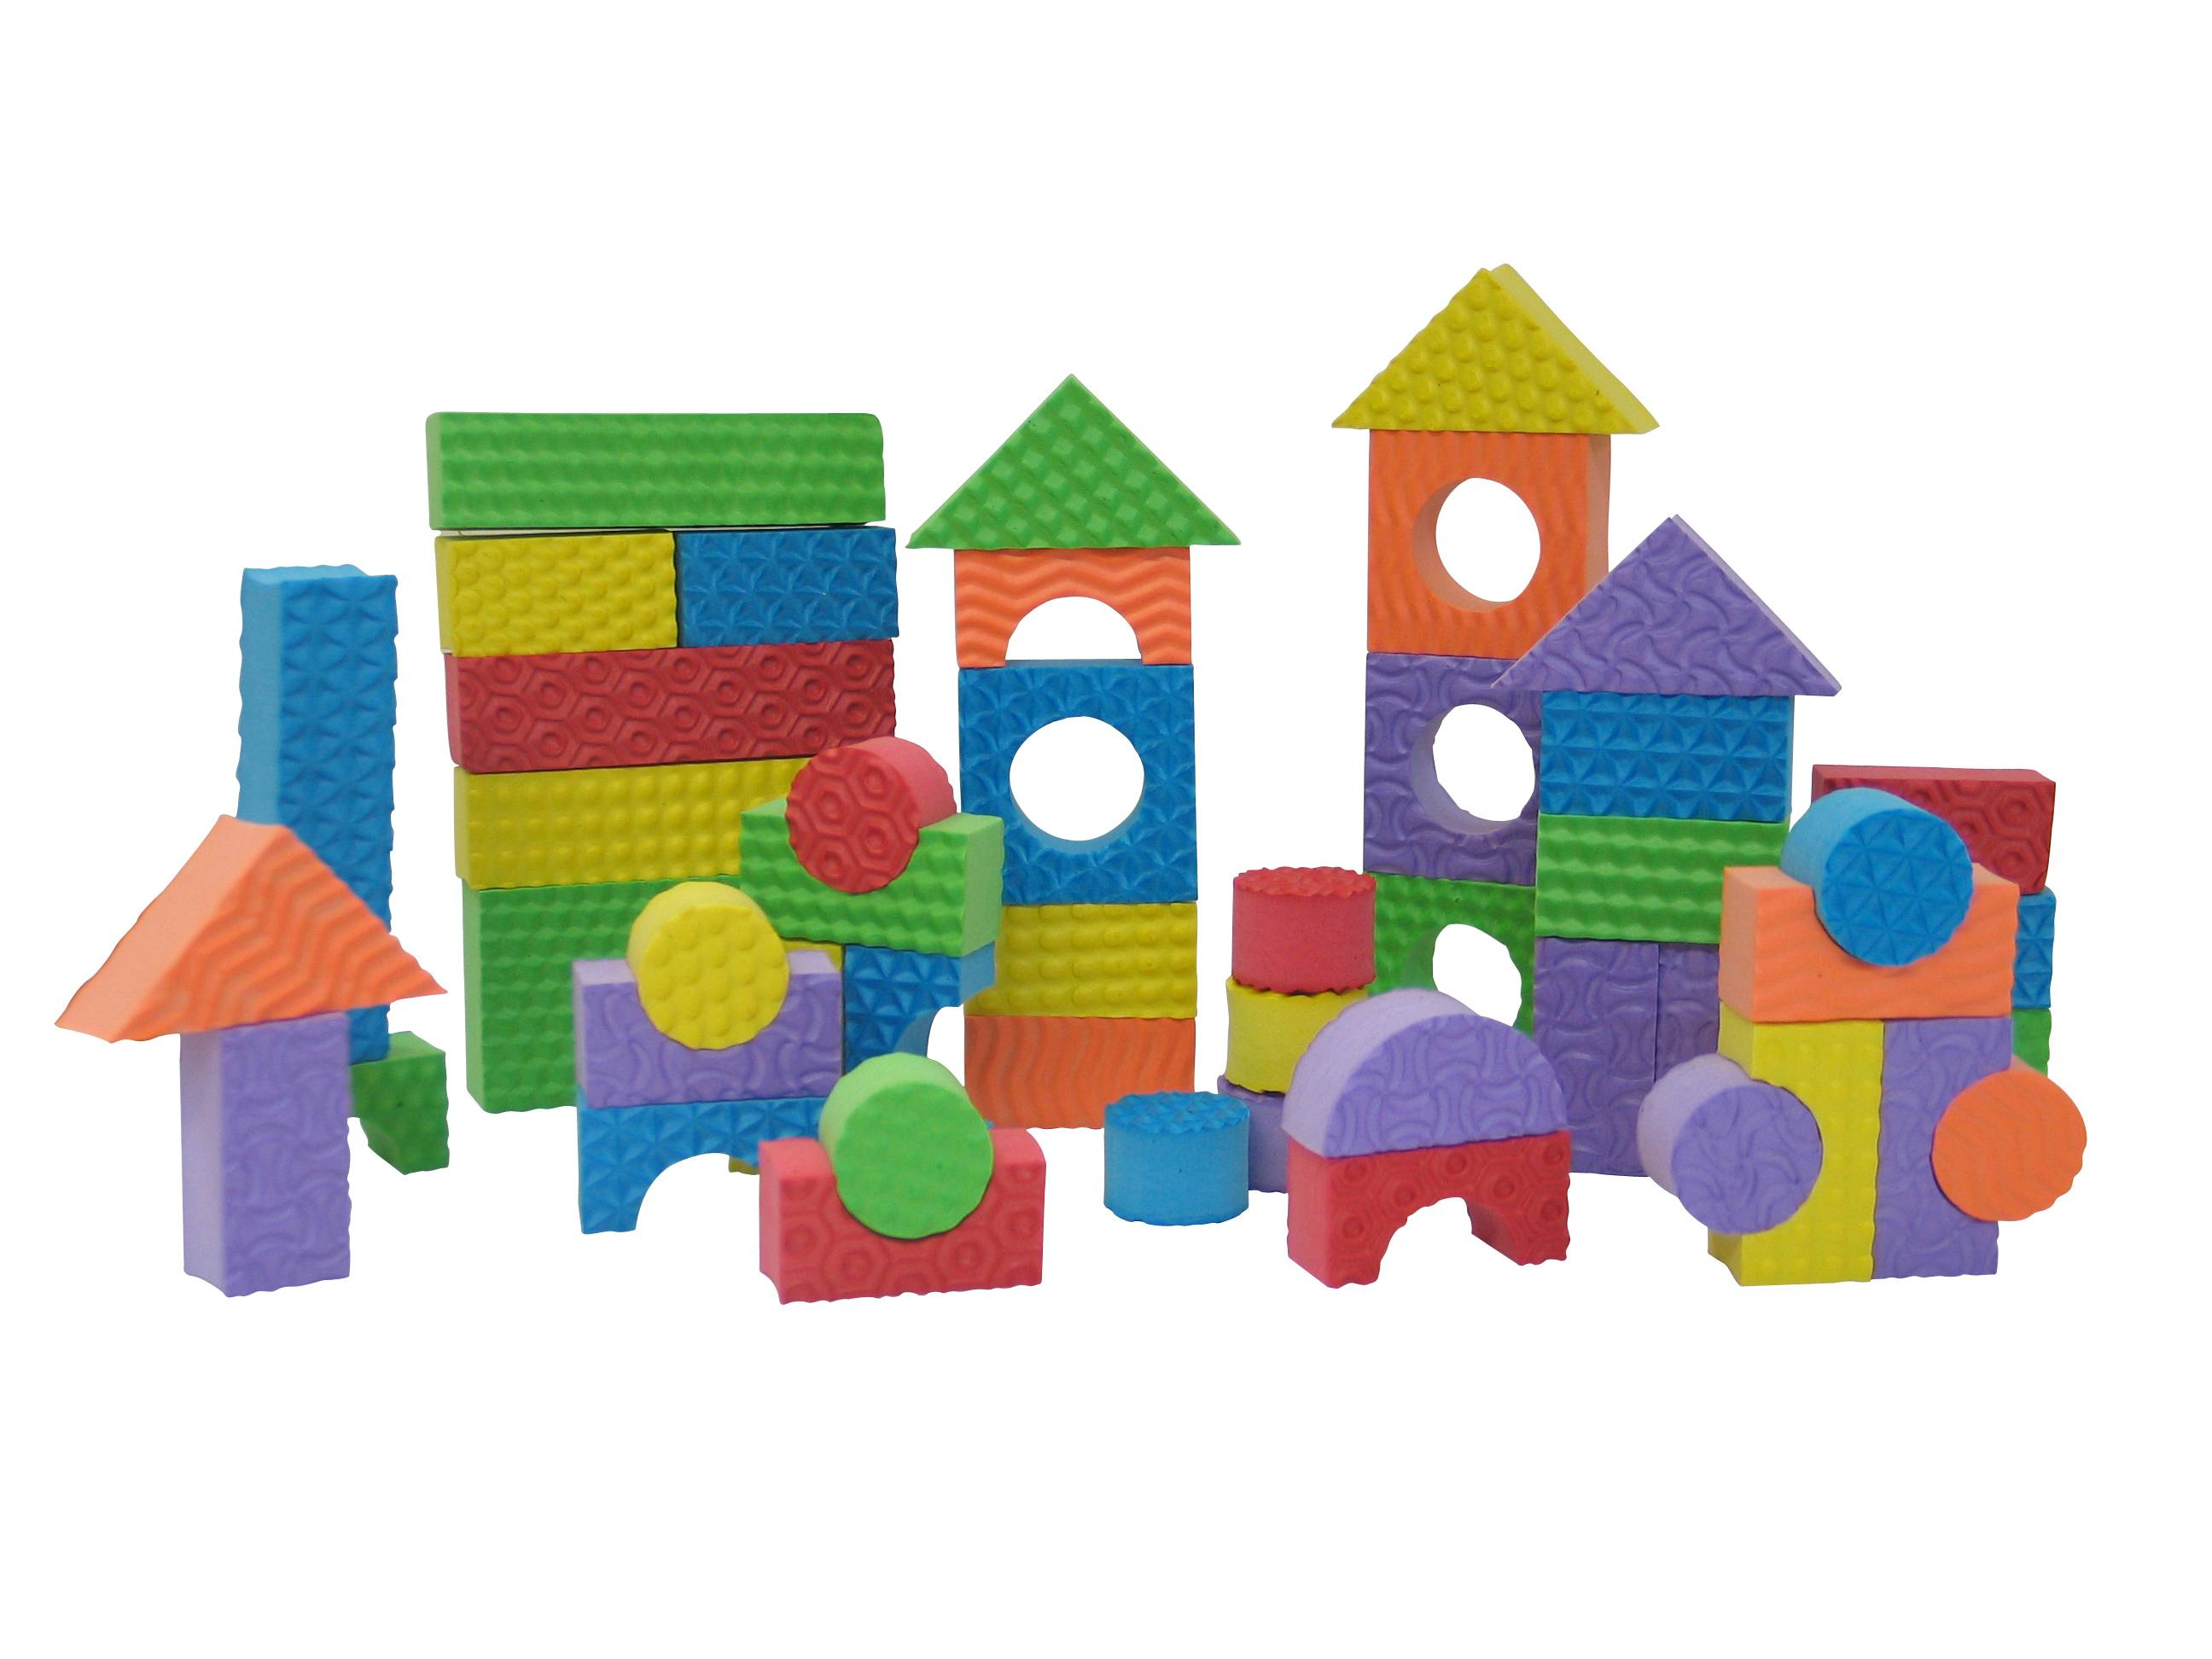 Edushape's Textured Toy Blocks are washable, textured foam blocks that come in a variety of sizes and colors so young children can practice a range of early building and designing skills.